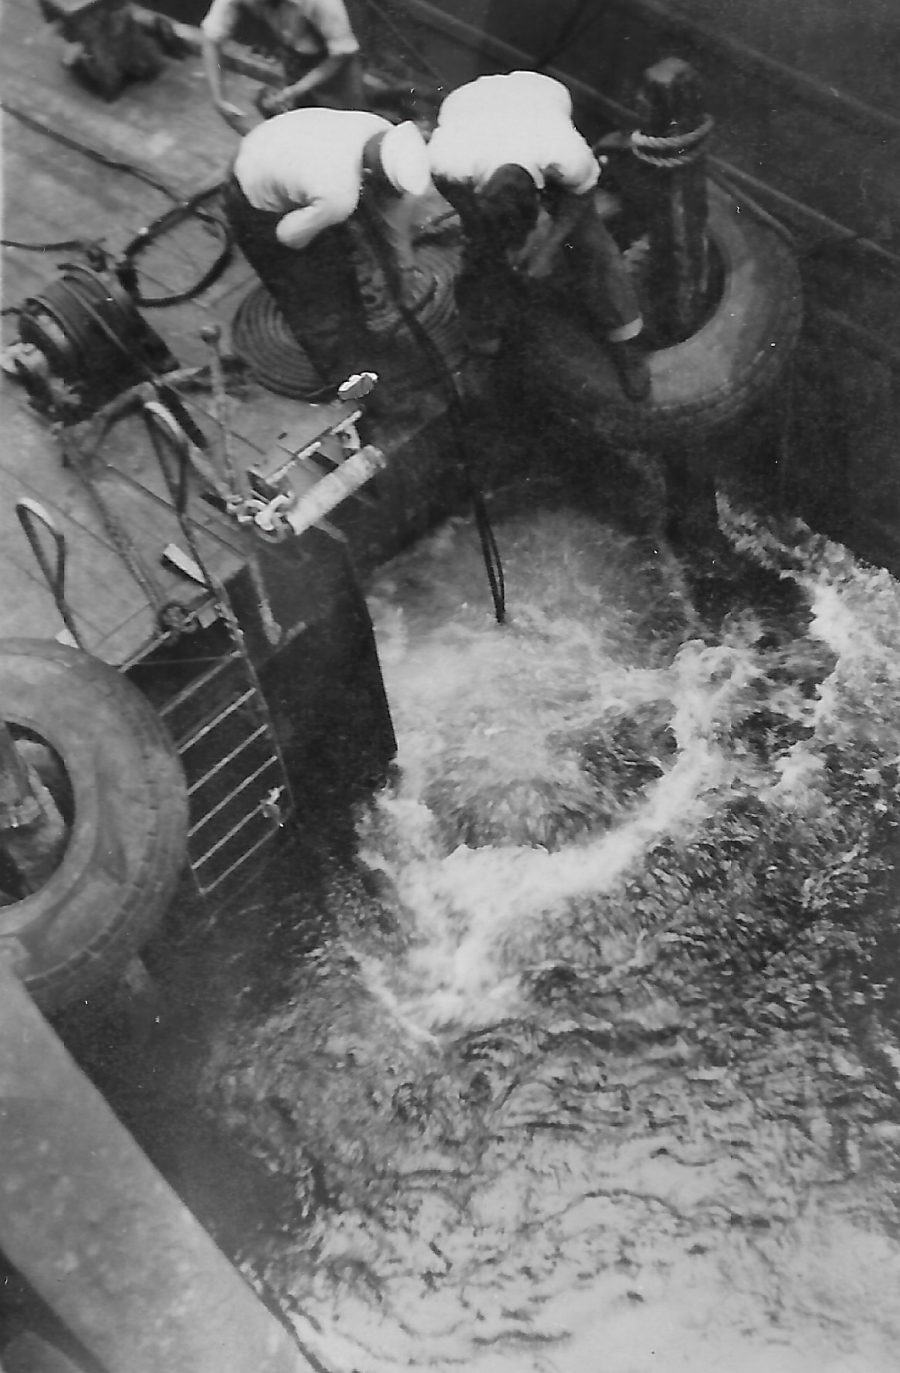 Diving for movie film in 40 ft of water during WWII. Photo taken by Bradley Piper or Renee Neuman.